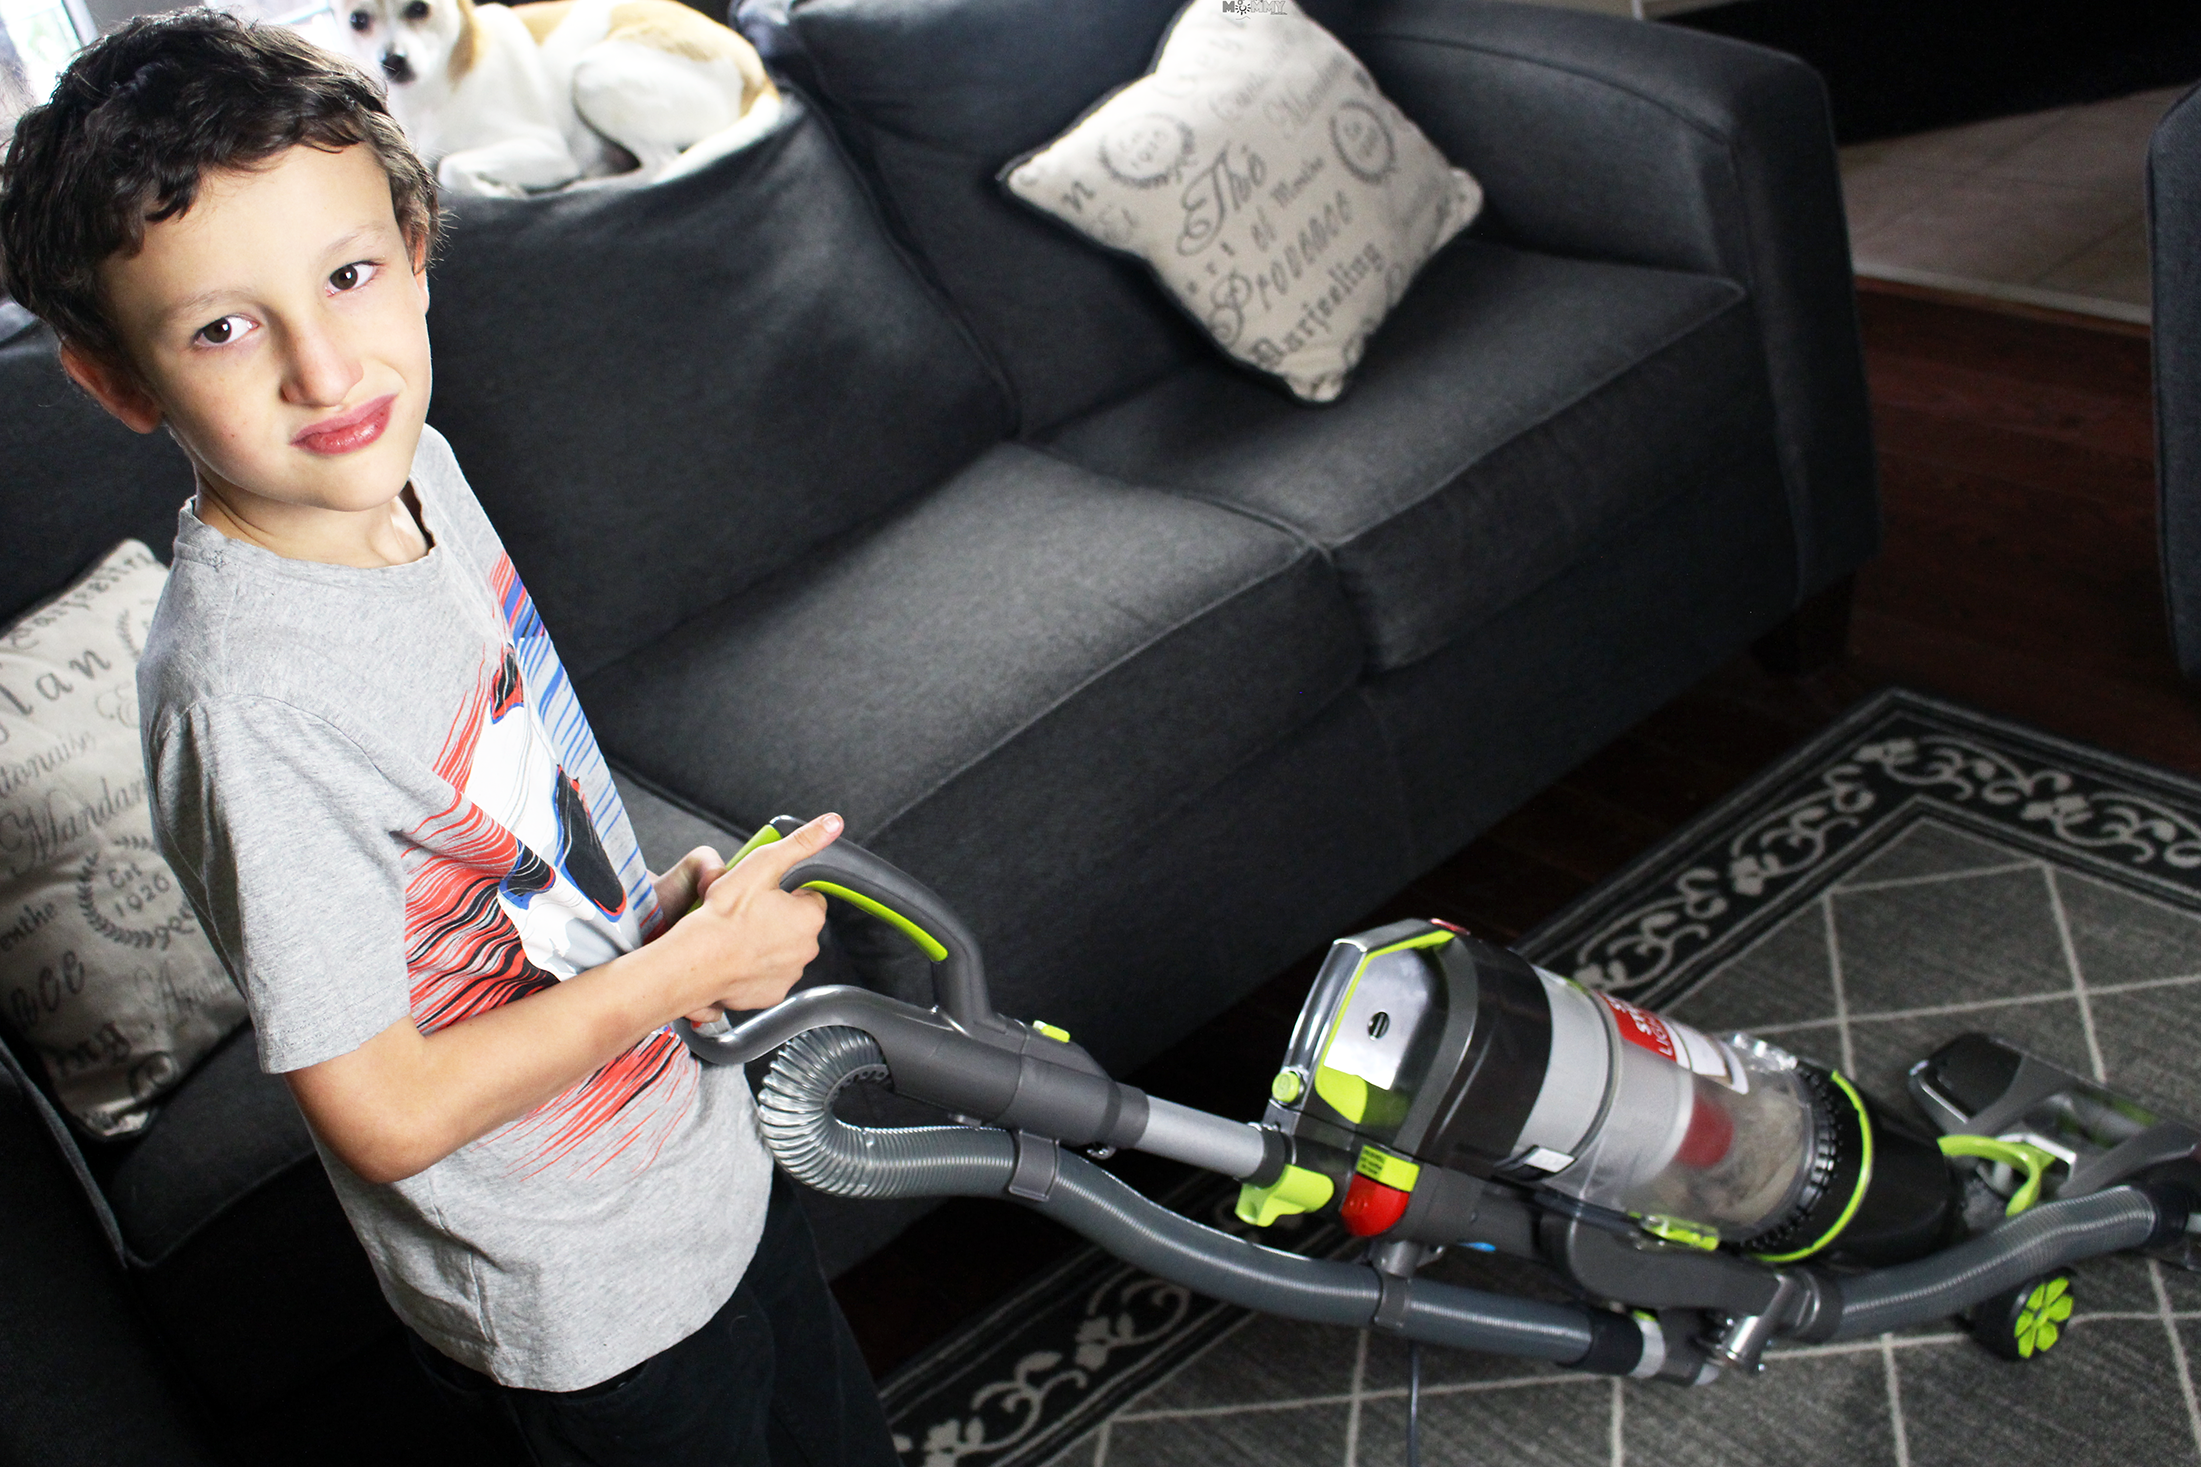 In a Pet Loving House: The Hoover Air Steerable Pet Does the Trick!